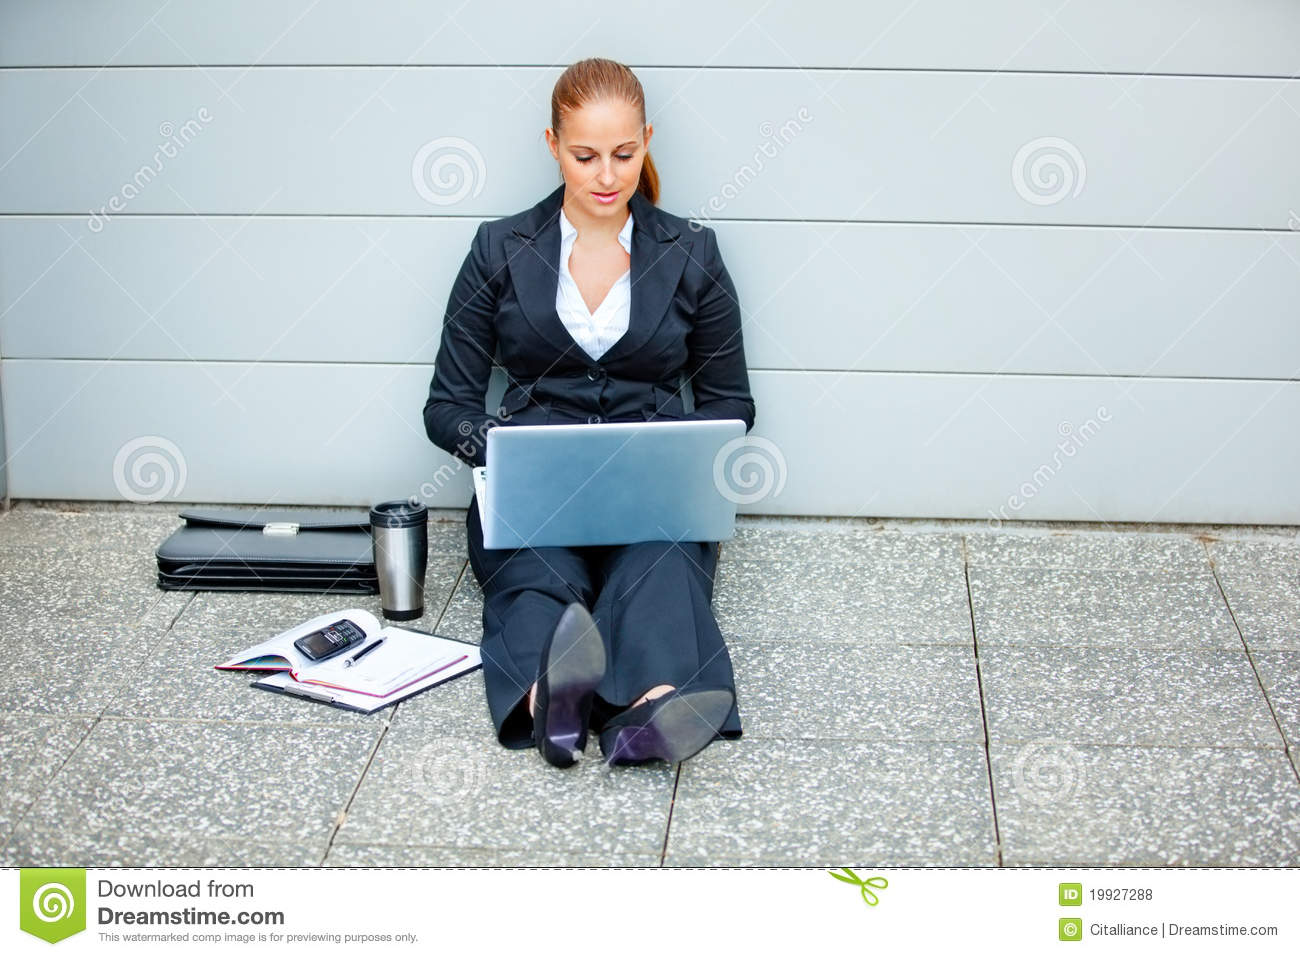 Download Pensive Modern Business Woman Using Laptop Stock Photo - Image of case, clever: 19927288